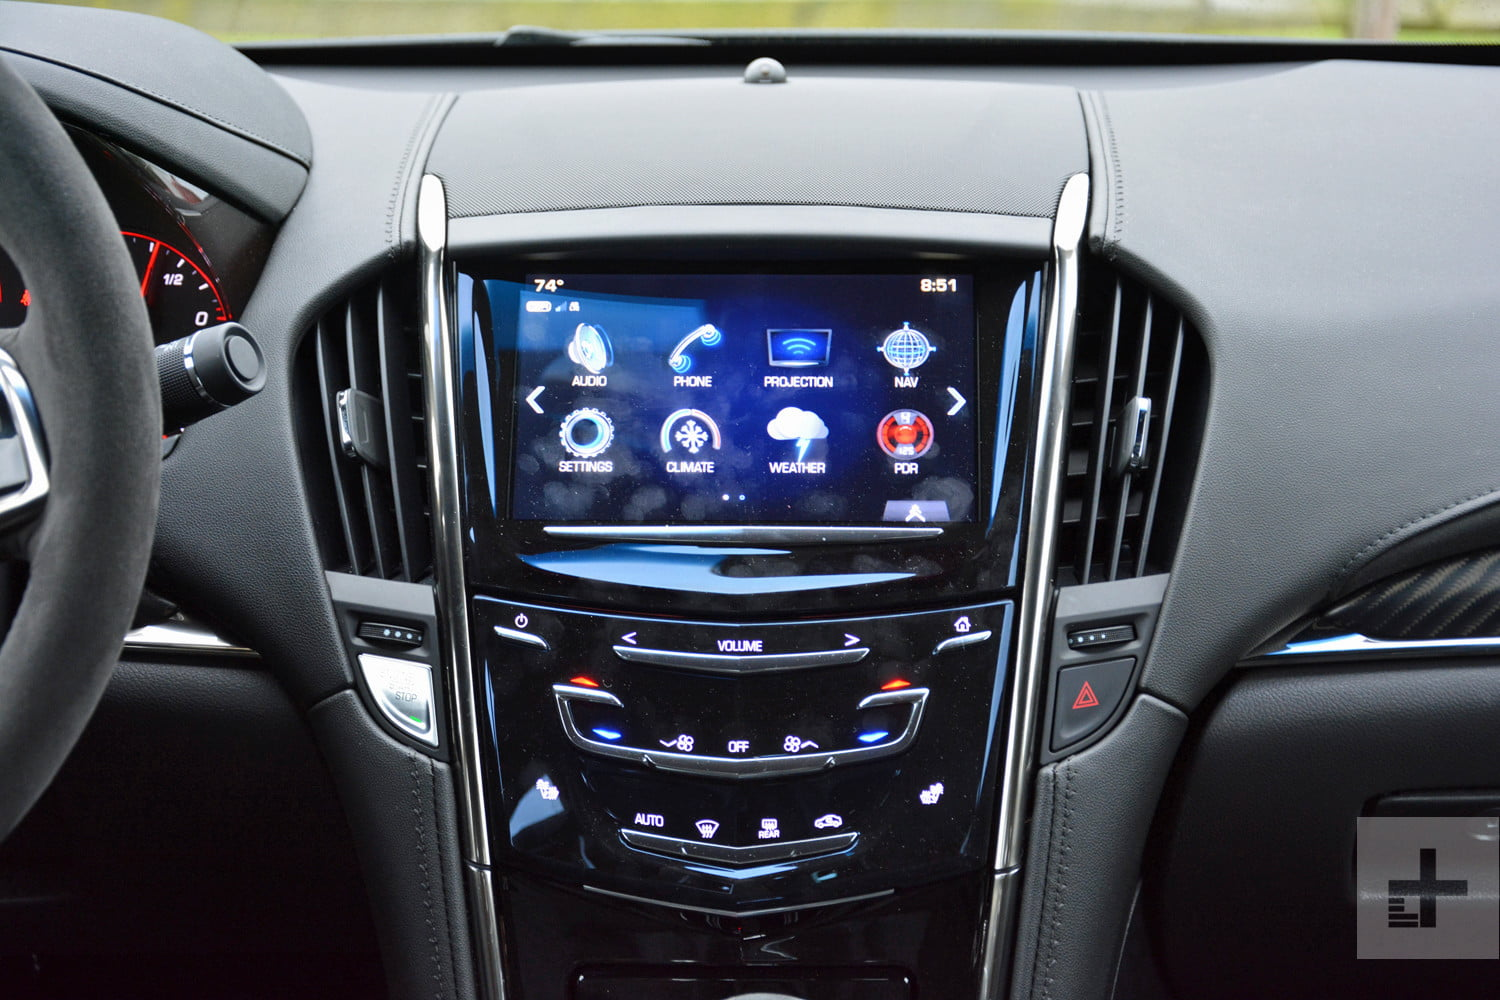 2017 Cadillac Ats V Coupe Review Performance Pictures And More Largest Engine 433